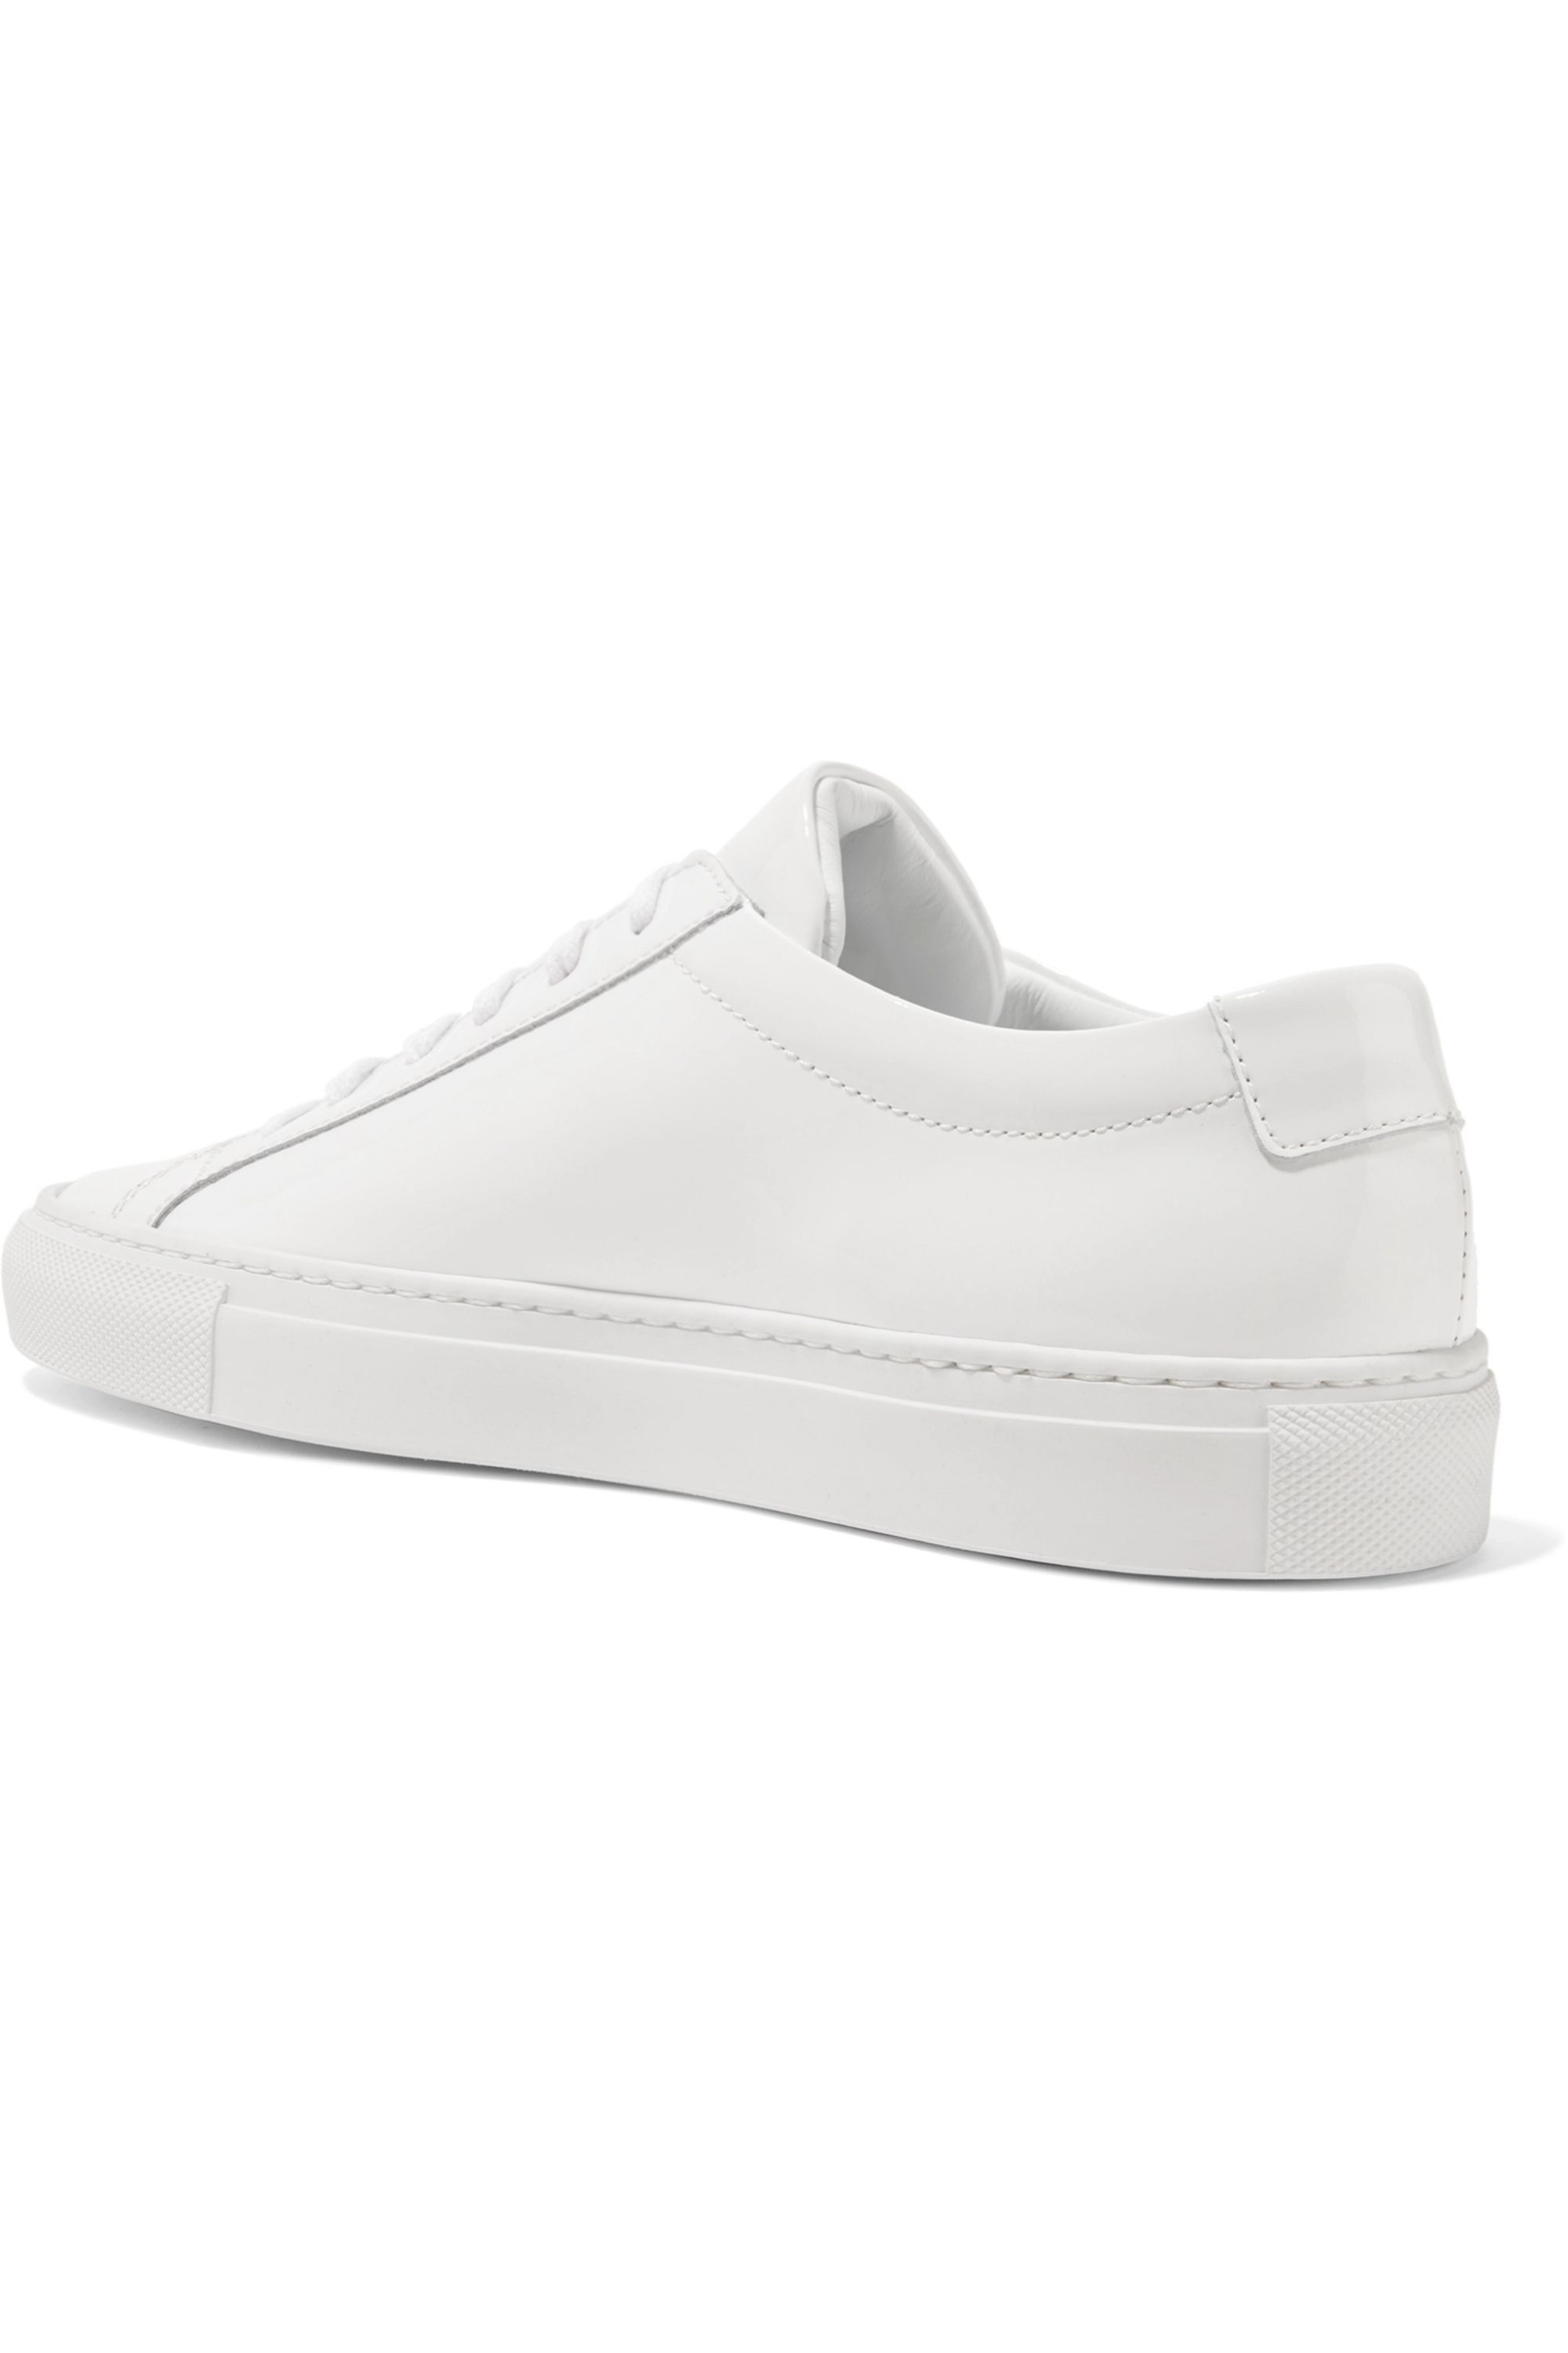 Common Projects Original Achilles patent-leather sneakers